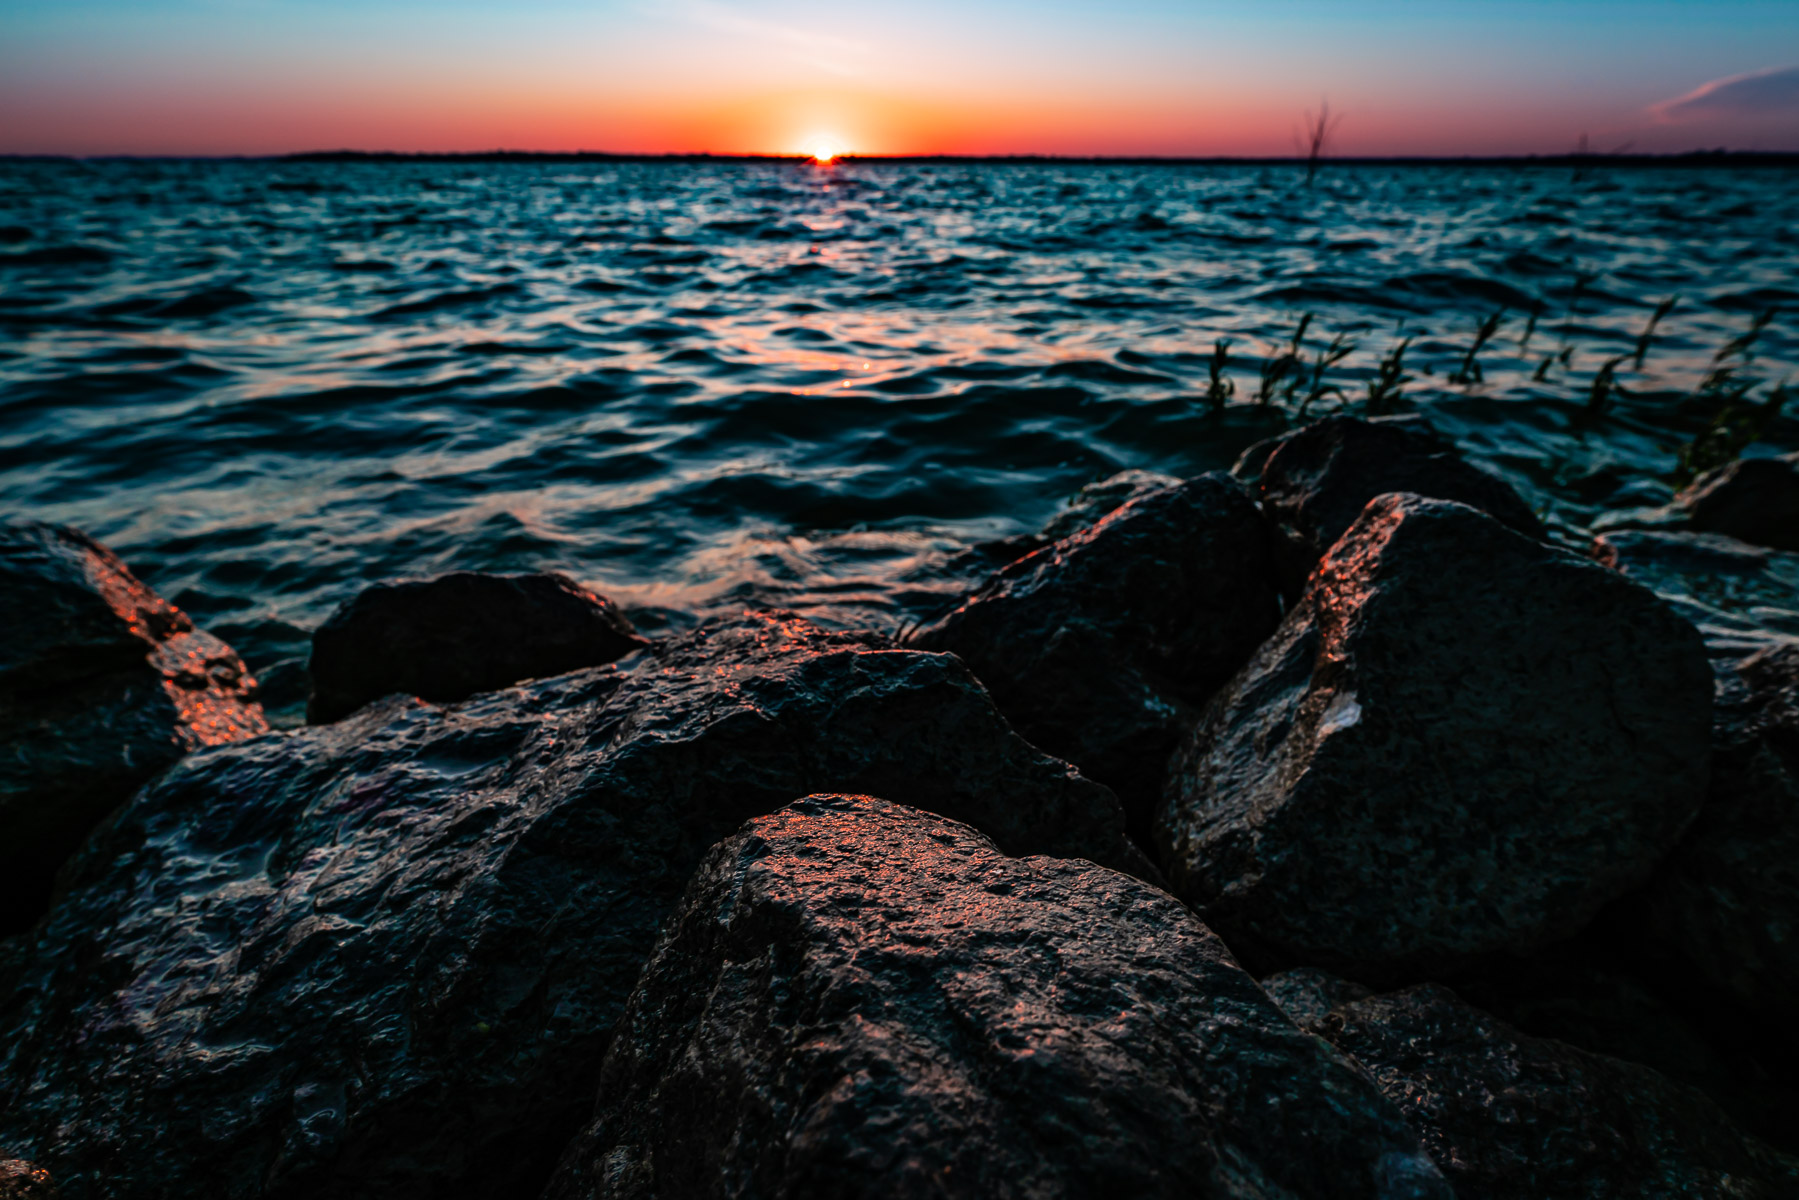 Sunrise along the rocky shore of North Texas' Lake Lavon.